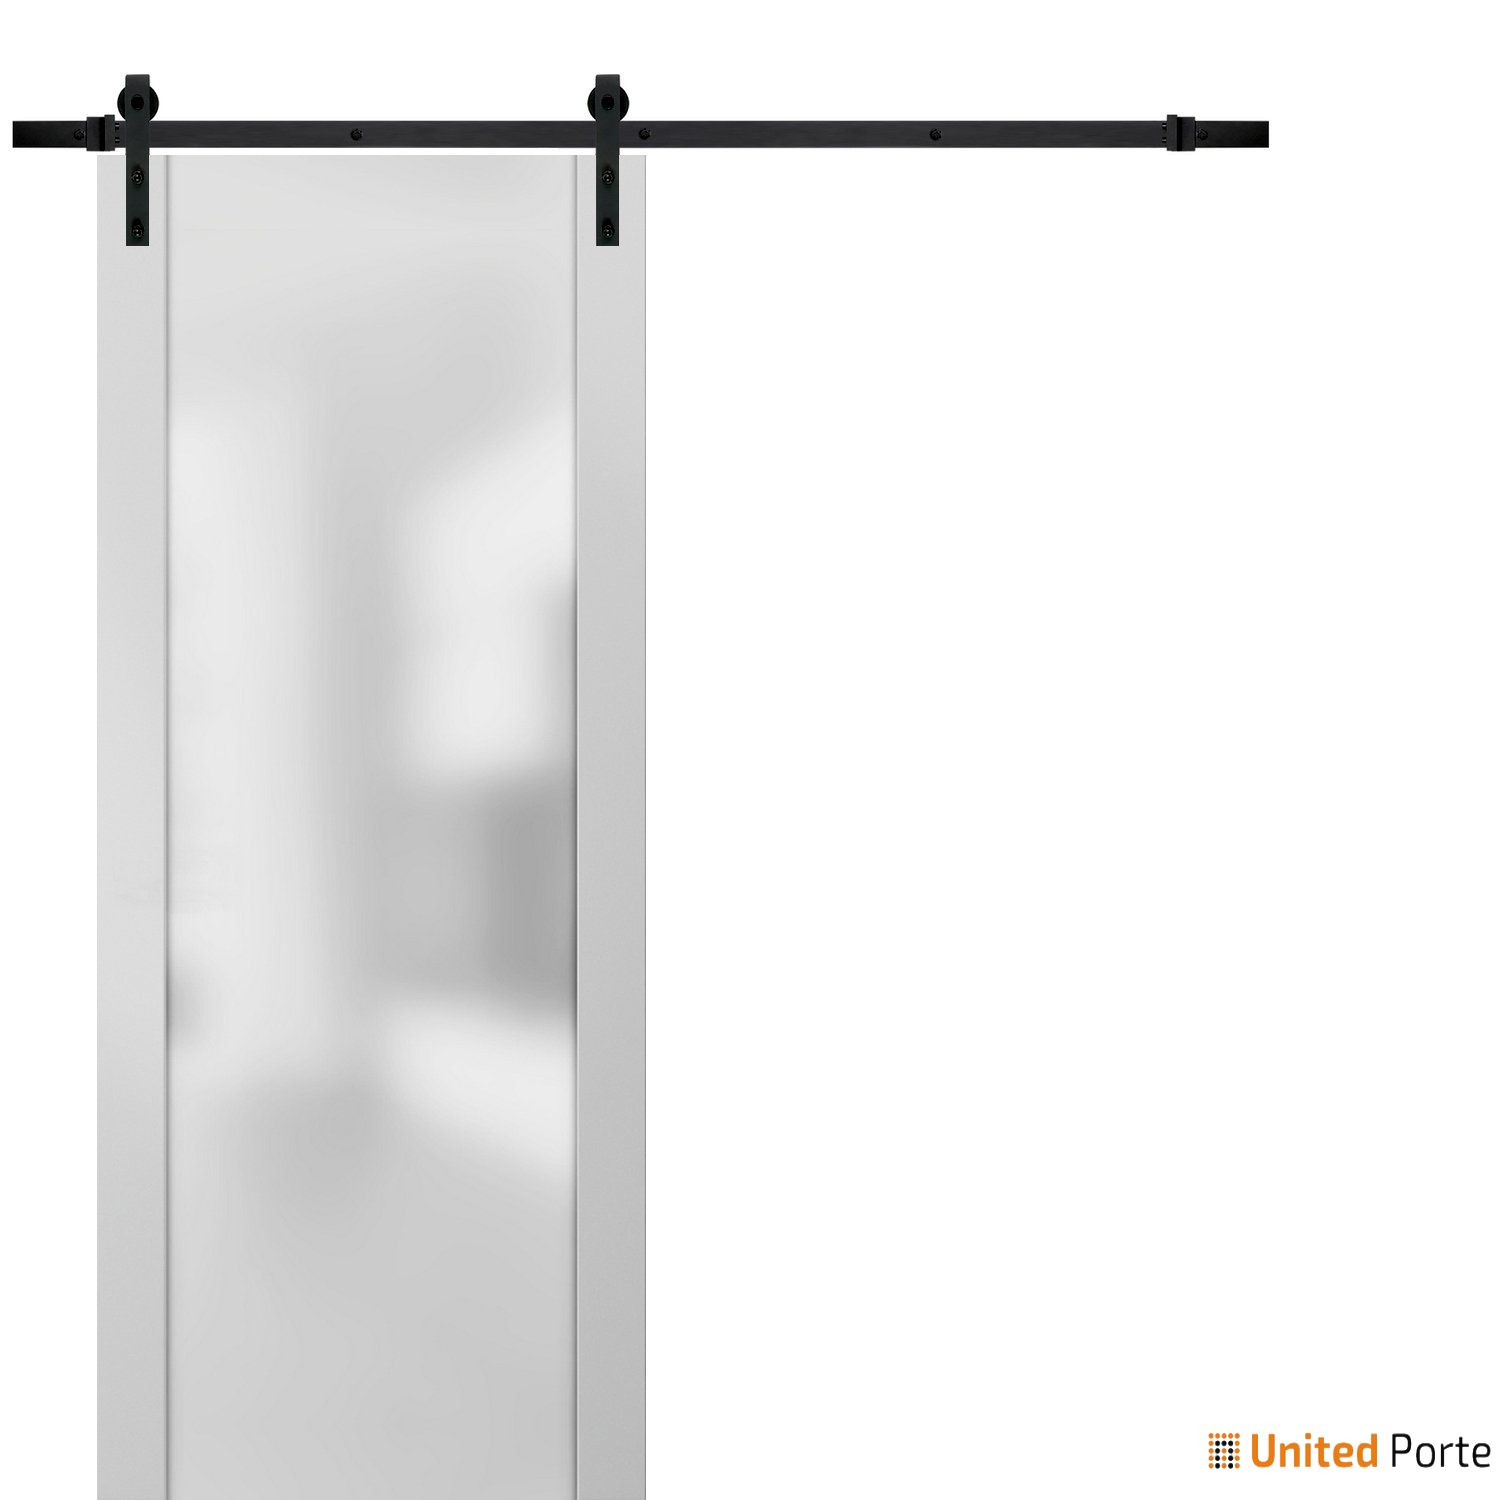 Planum 4114 White Silk Sturdy Barn Door Frosted Tempered Glass with Black Hardware   Modern Solid Panel Interior Barn Doors